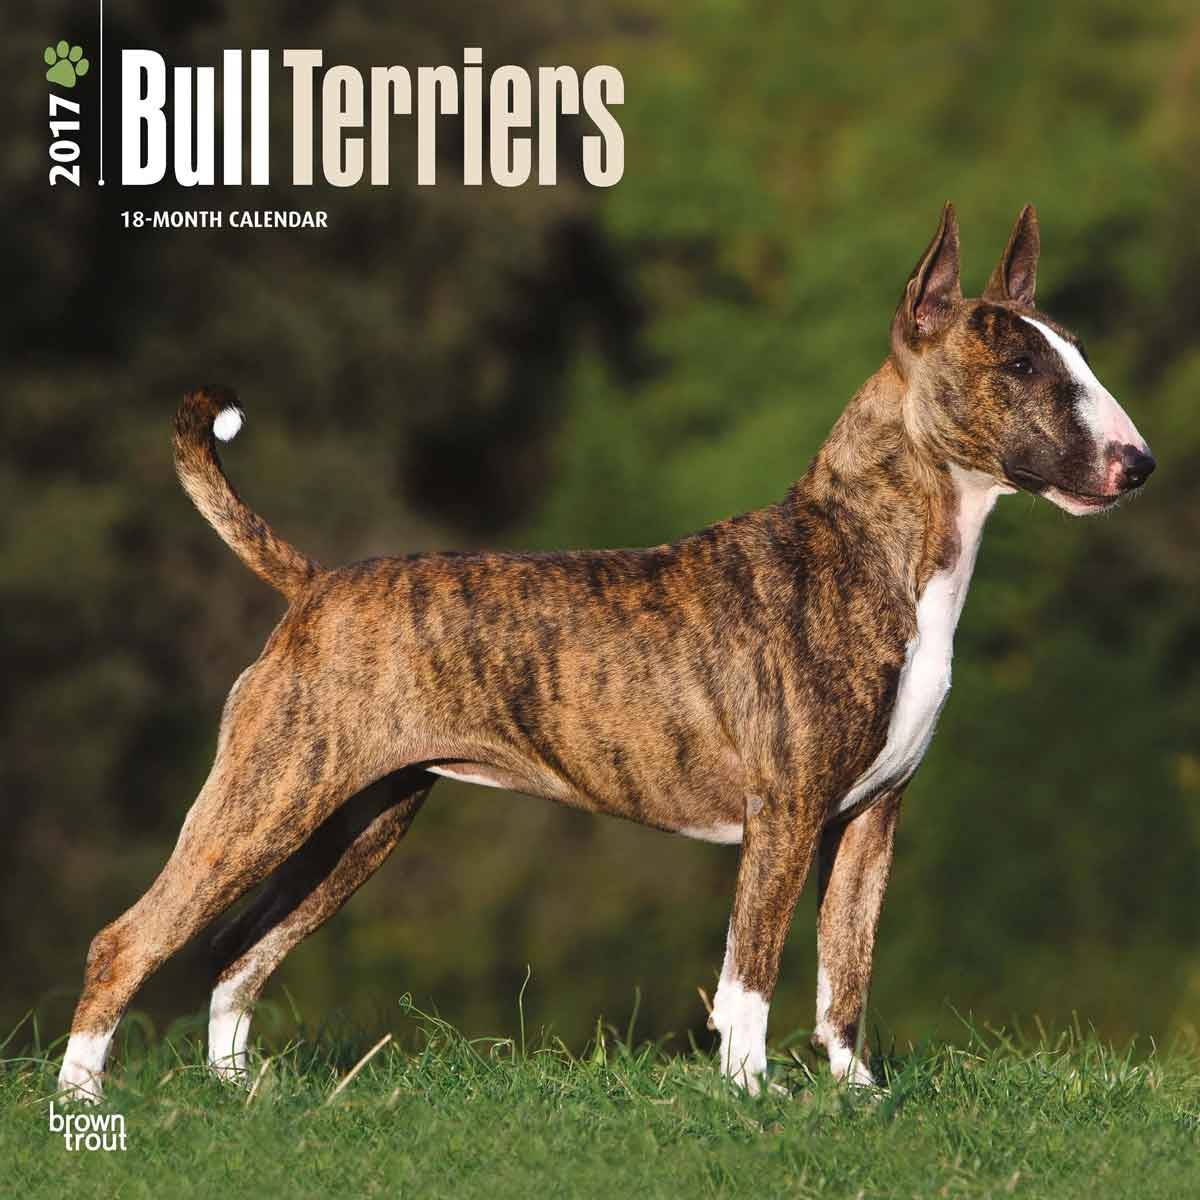 bull terriers calendars 2019 on ukposters europosters